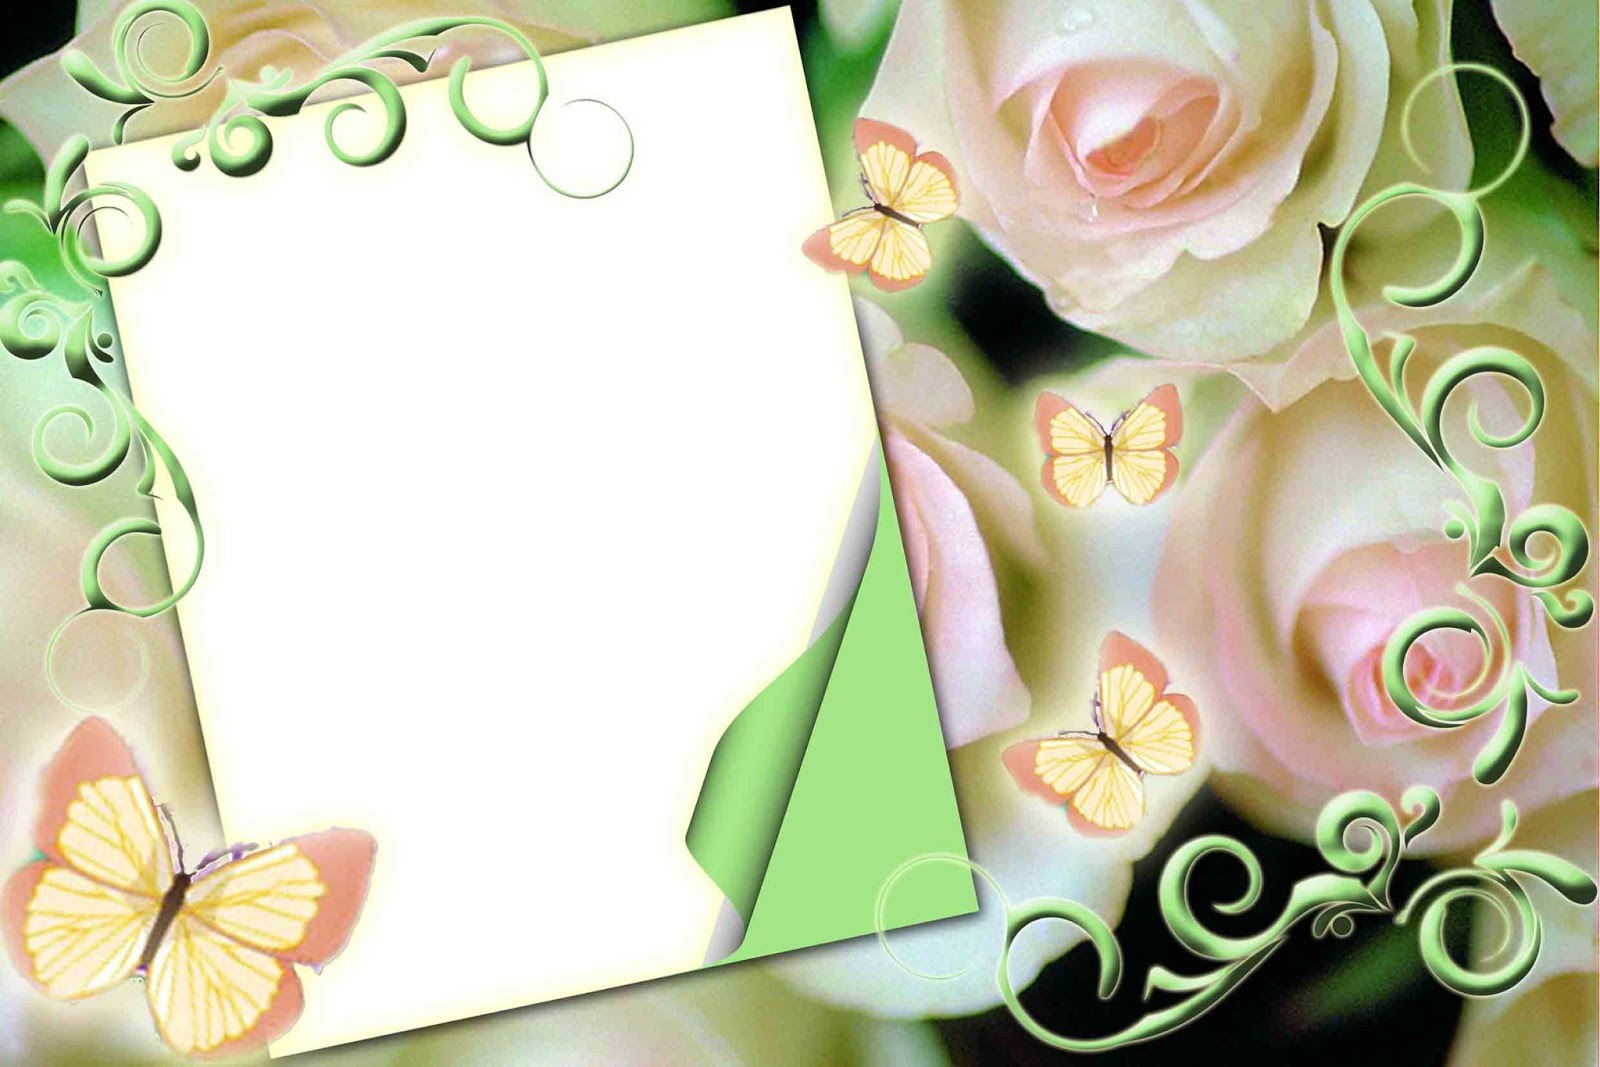 Wedding Photo Frames Free Download picture wallpaper (1600 x 1067 ...